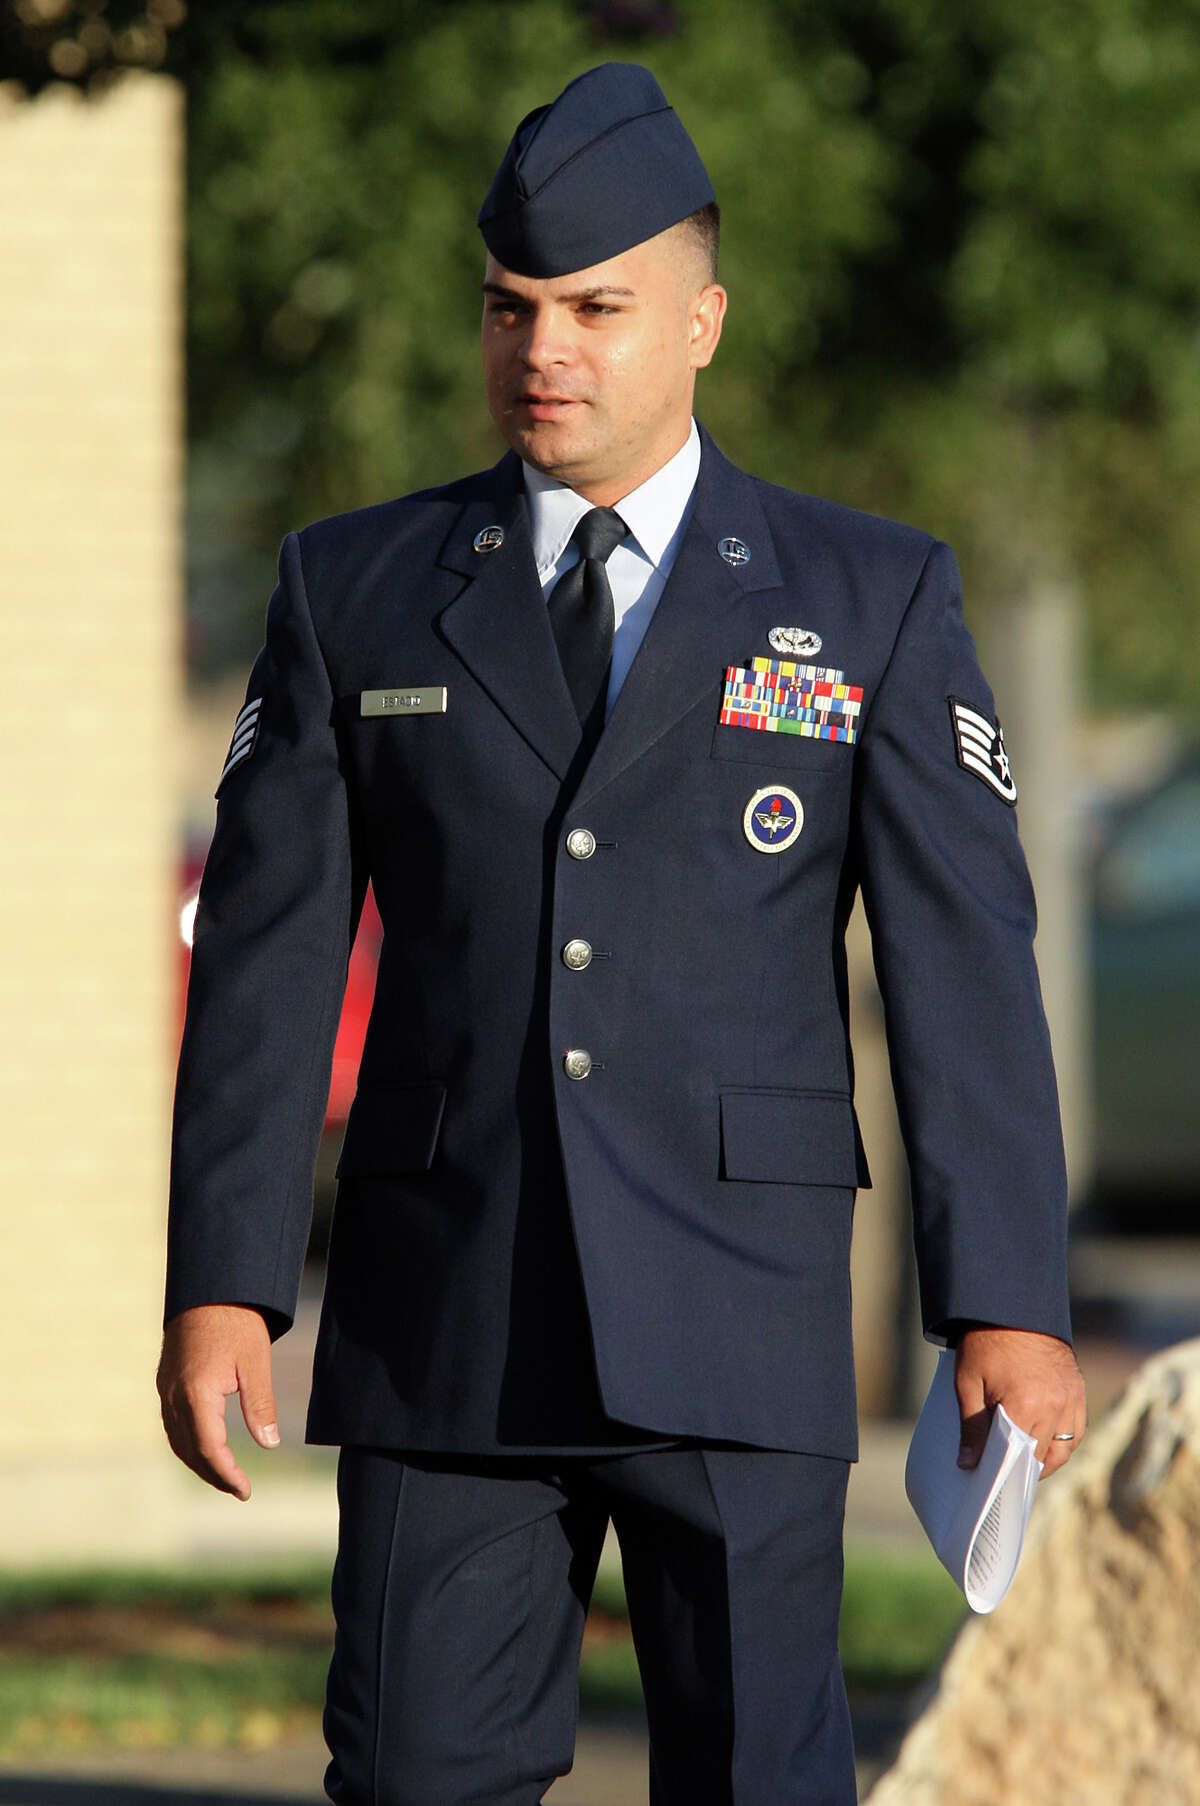 U.S. Air Force Staff Sgt. Kwinton Estacio, right, arrives for the start of his court marshal at Lackland Air Force Base, Monday, Sept. 10, 2012. Estacio is being tried on charges that he sexually assaulting a female basic training student, violating a no-contact order and asking several trainees to lie about his contact with them.